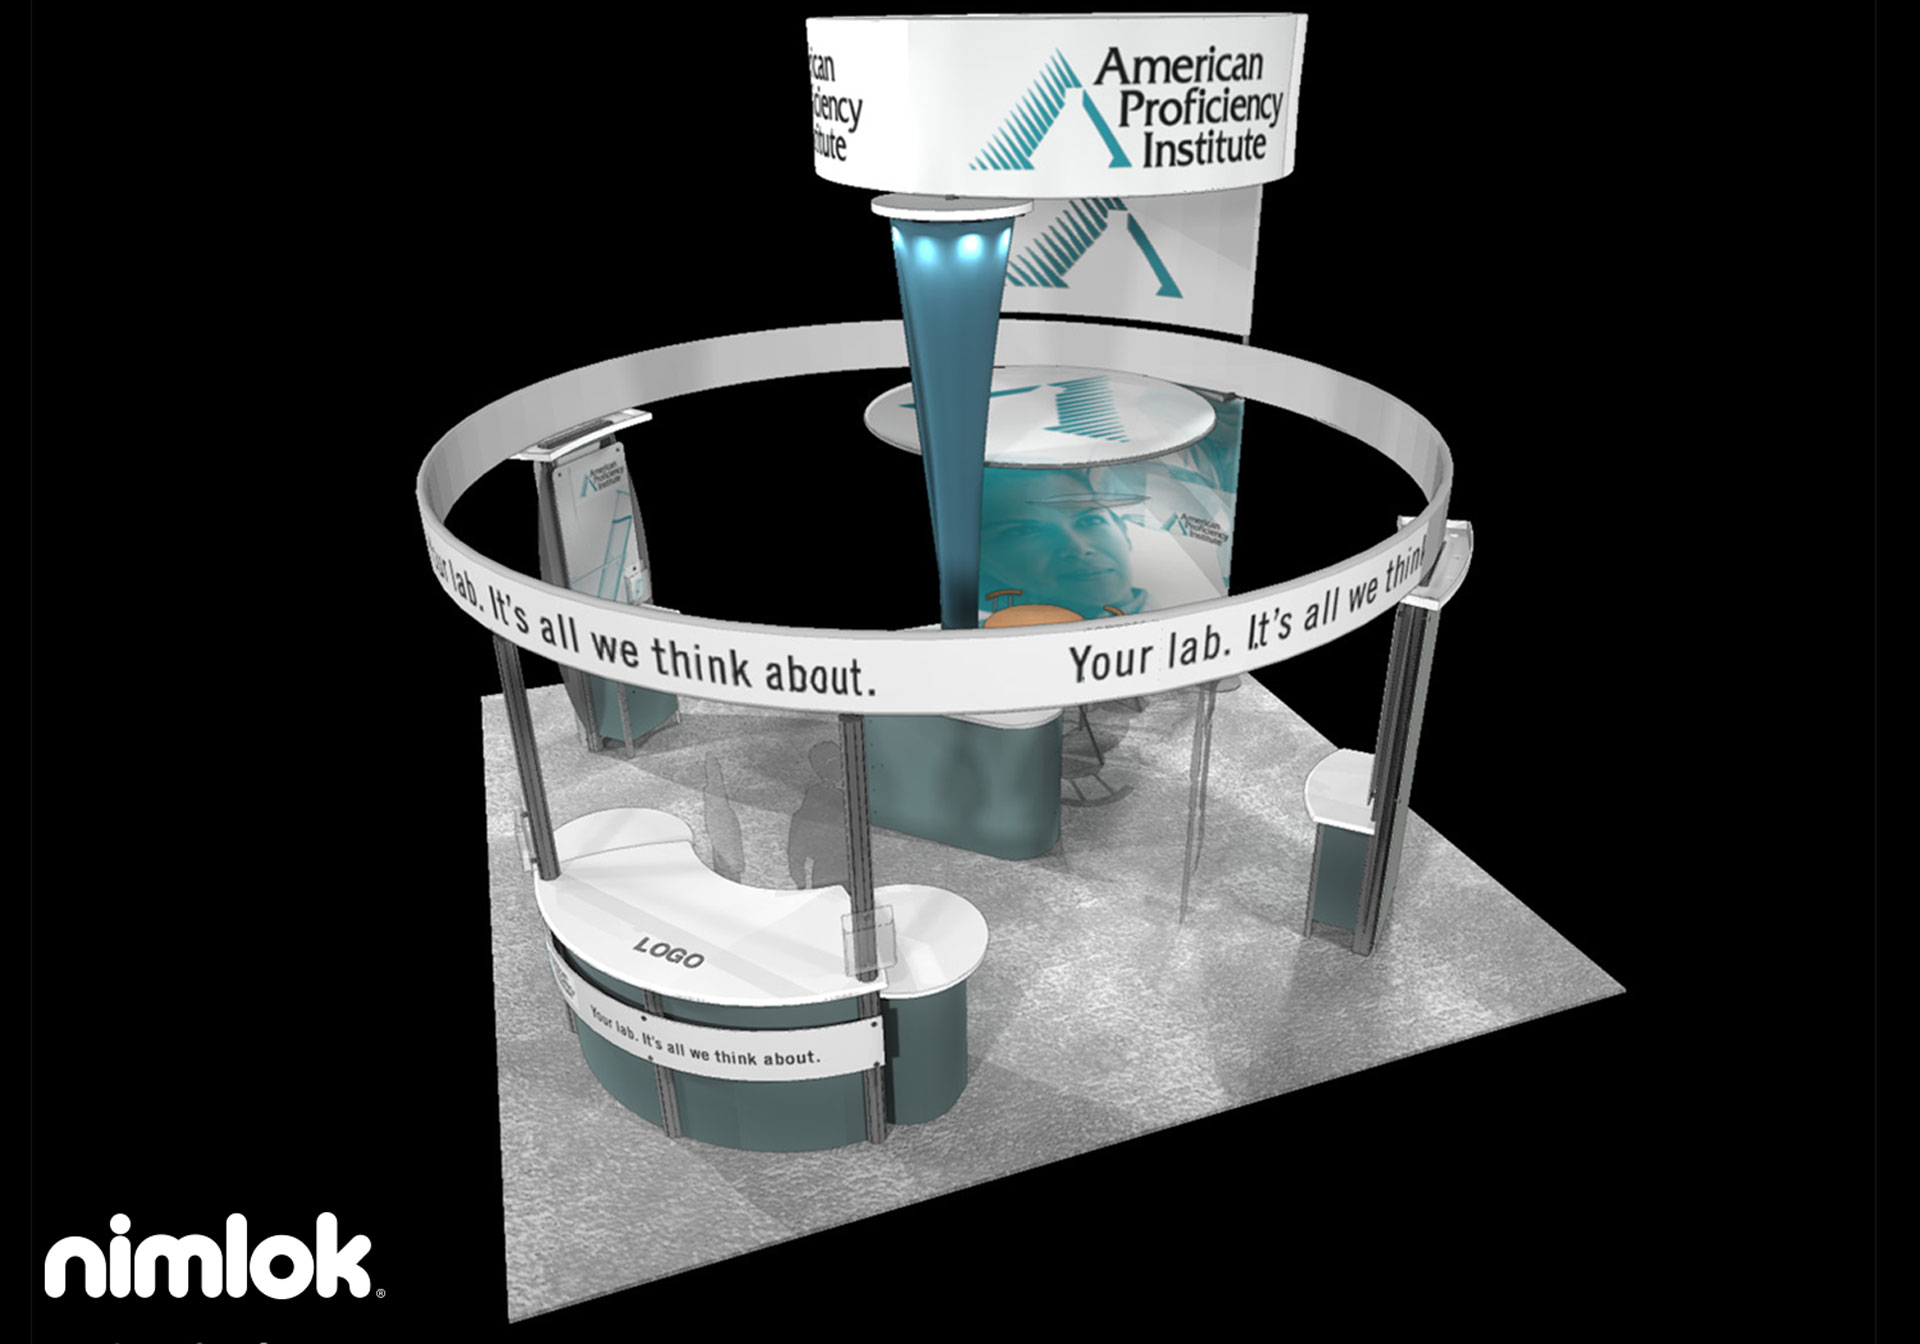 American Proficiency Institute - 20x20 - trade show exhibit